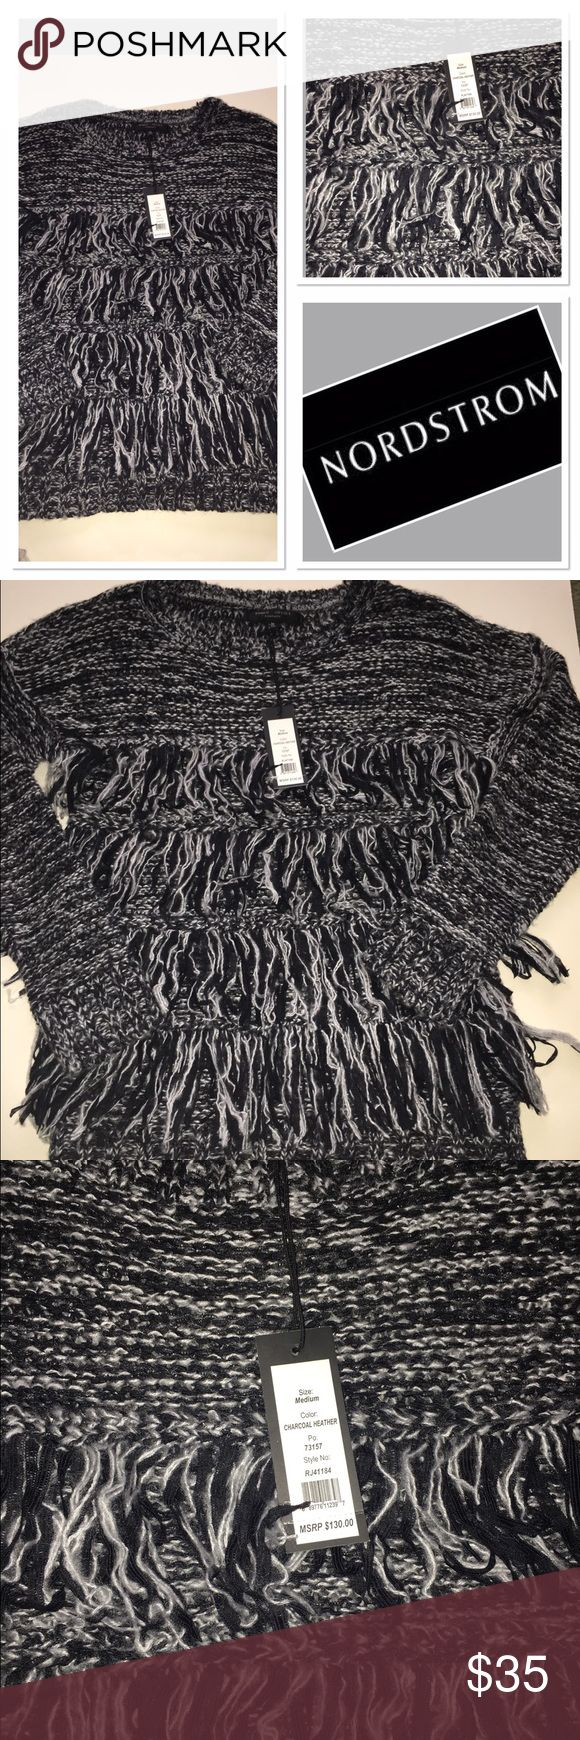 NWT Romeo +Juliet black and white fringe sweater Stunning brand new size M front fringe sweater Romeo & Juliet Couture Sweaters Crew & Scoop Necks